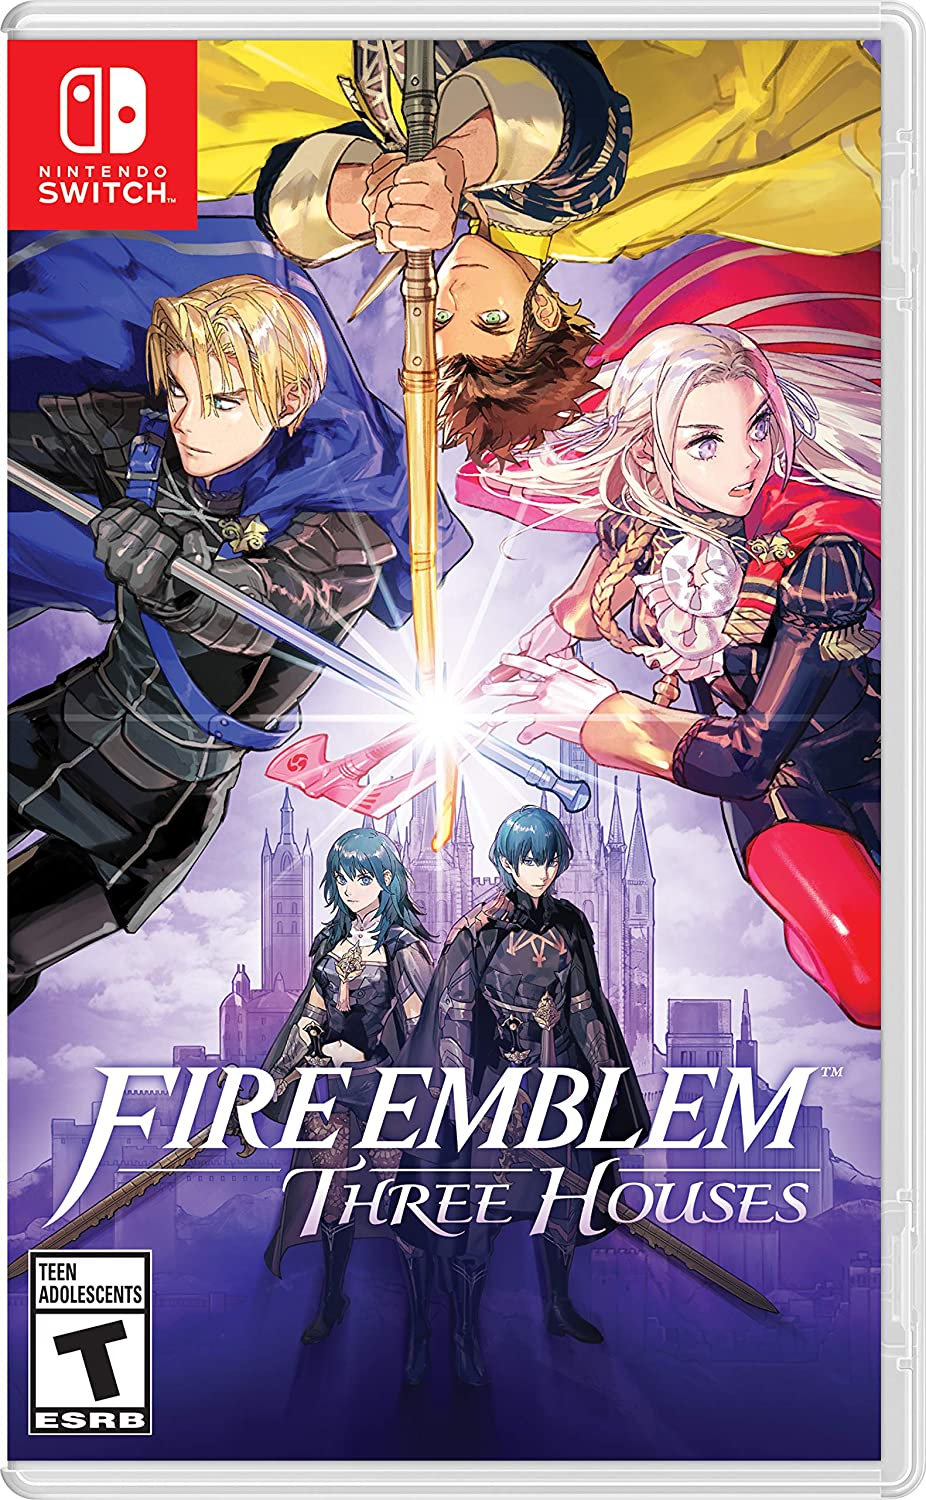 NINTENDO SWITCH FIRES EMBLEM - EvoRetro Lets Game